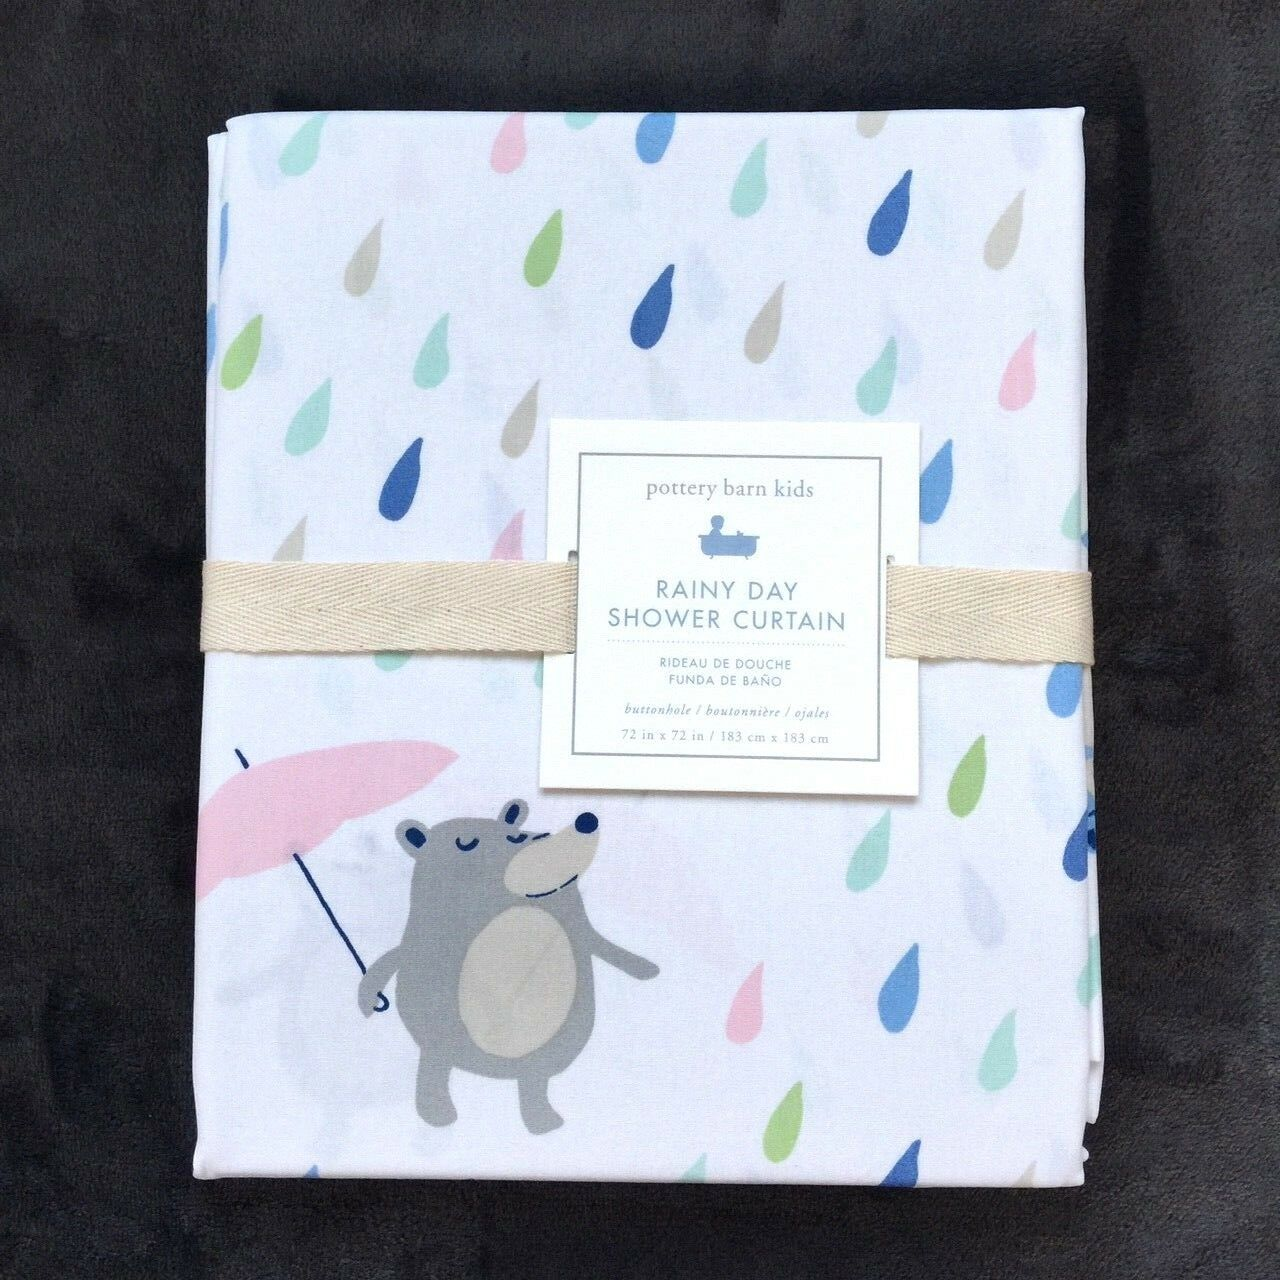 Pottery barn kids Rainy Day Critters Shower Curtain